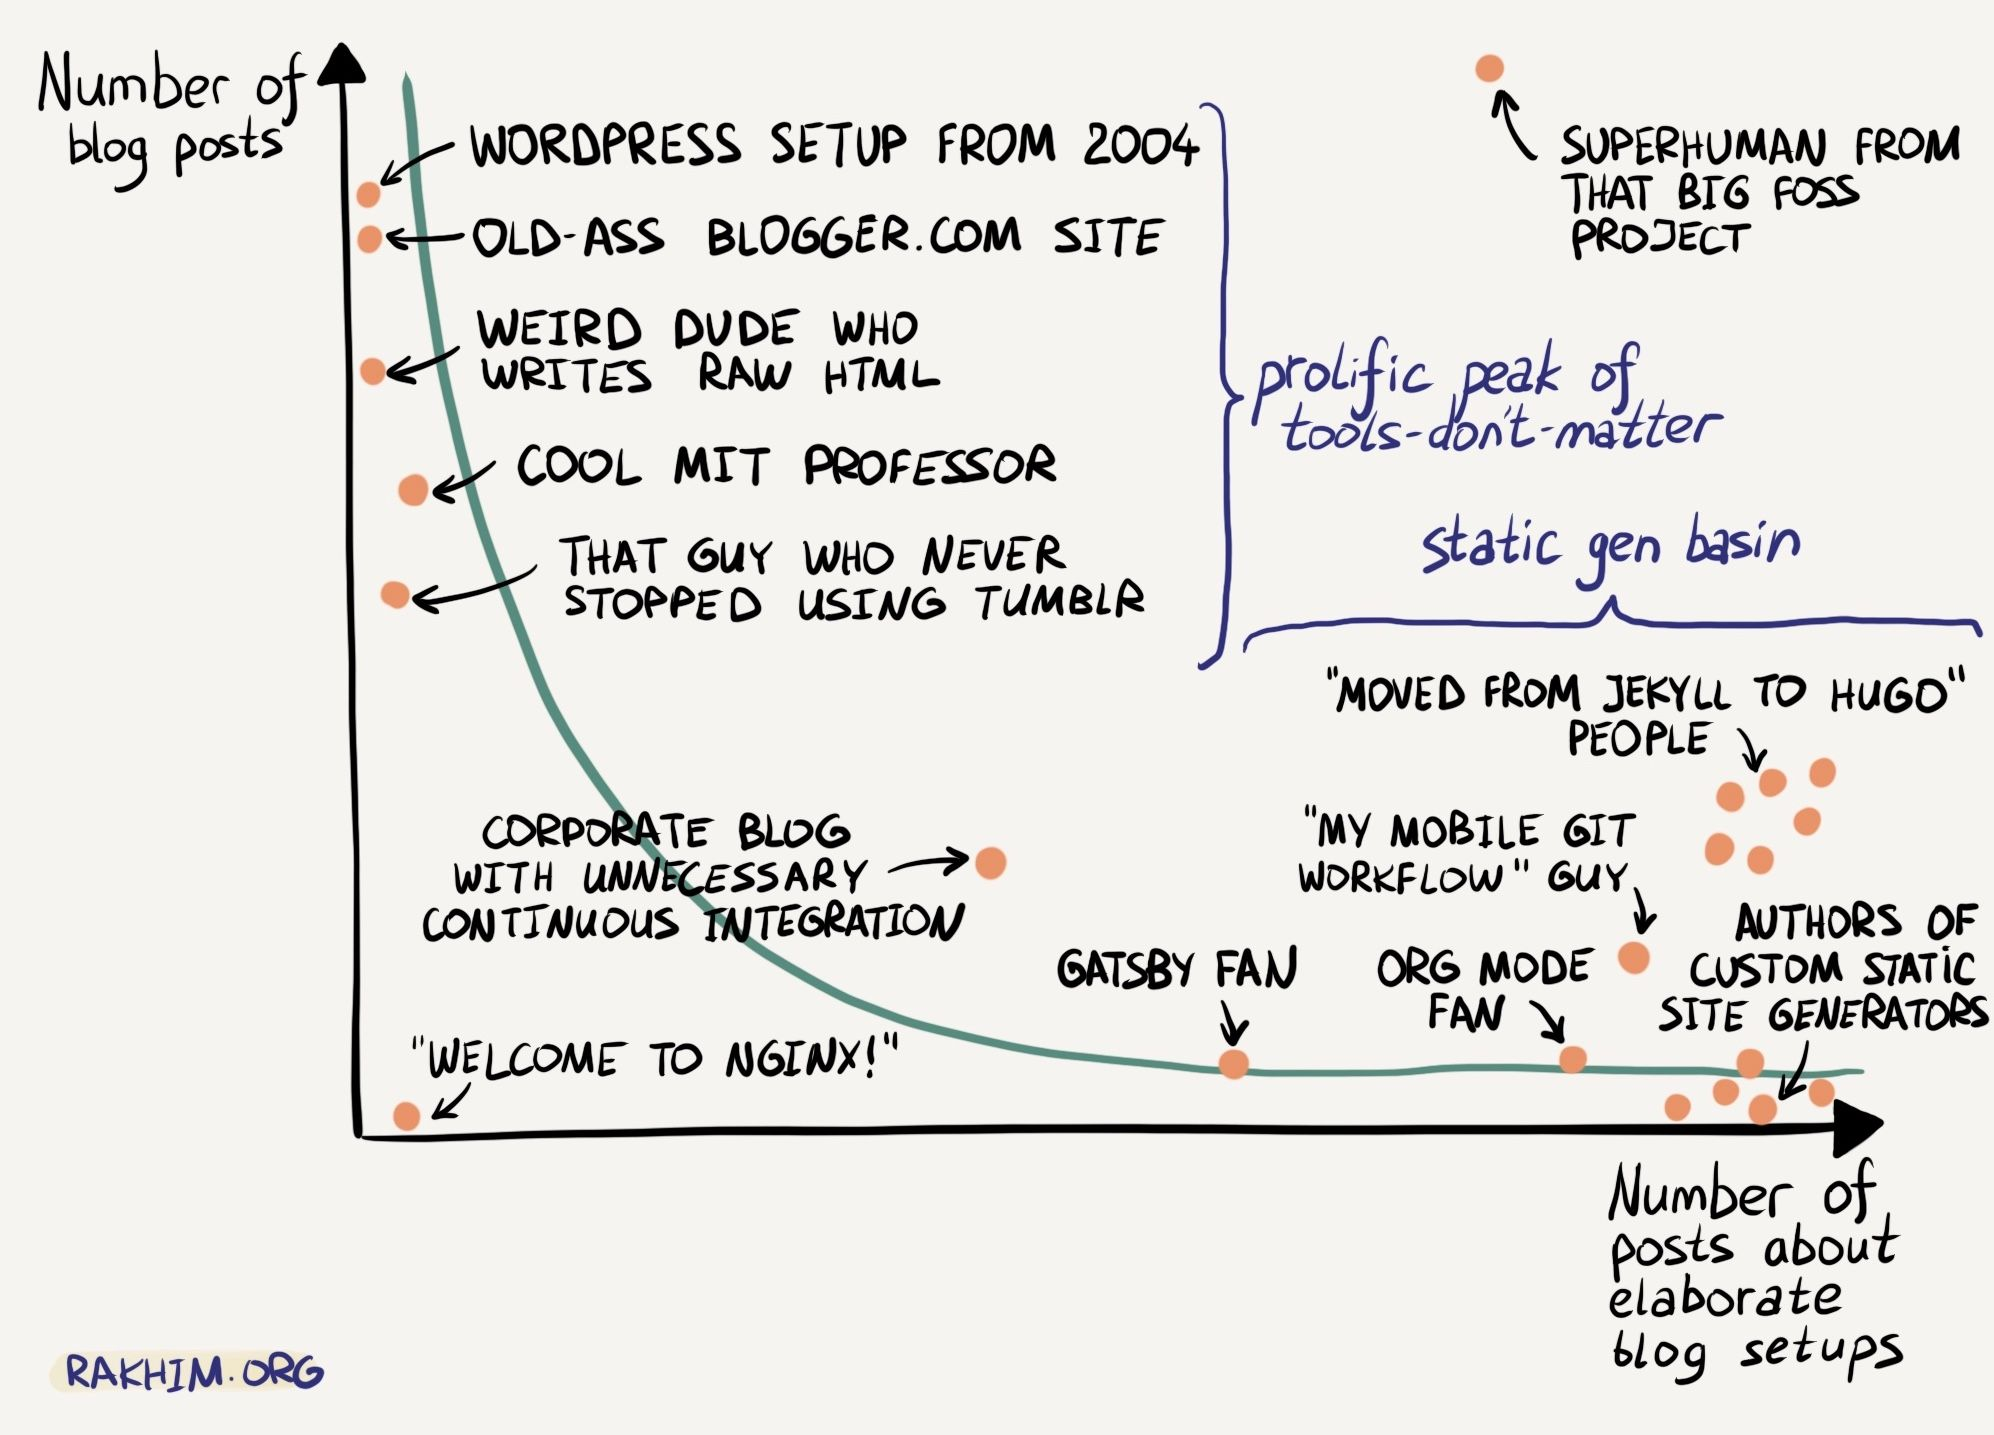 A web comic that makes fun of SSG devs, who spends more time writing their setup, instead of writing actual blog posts.